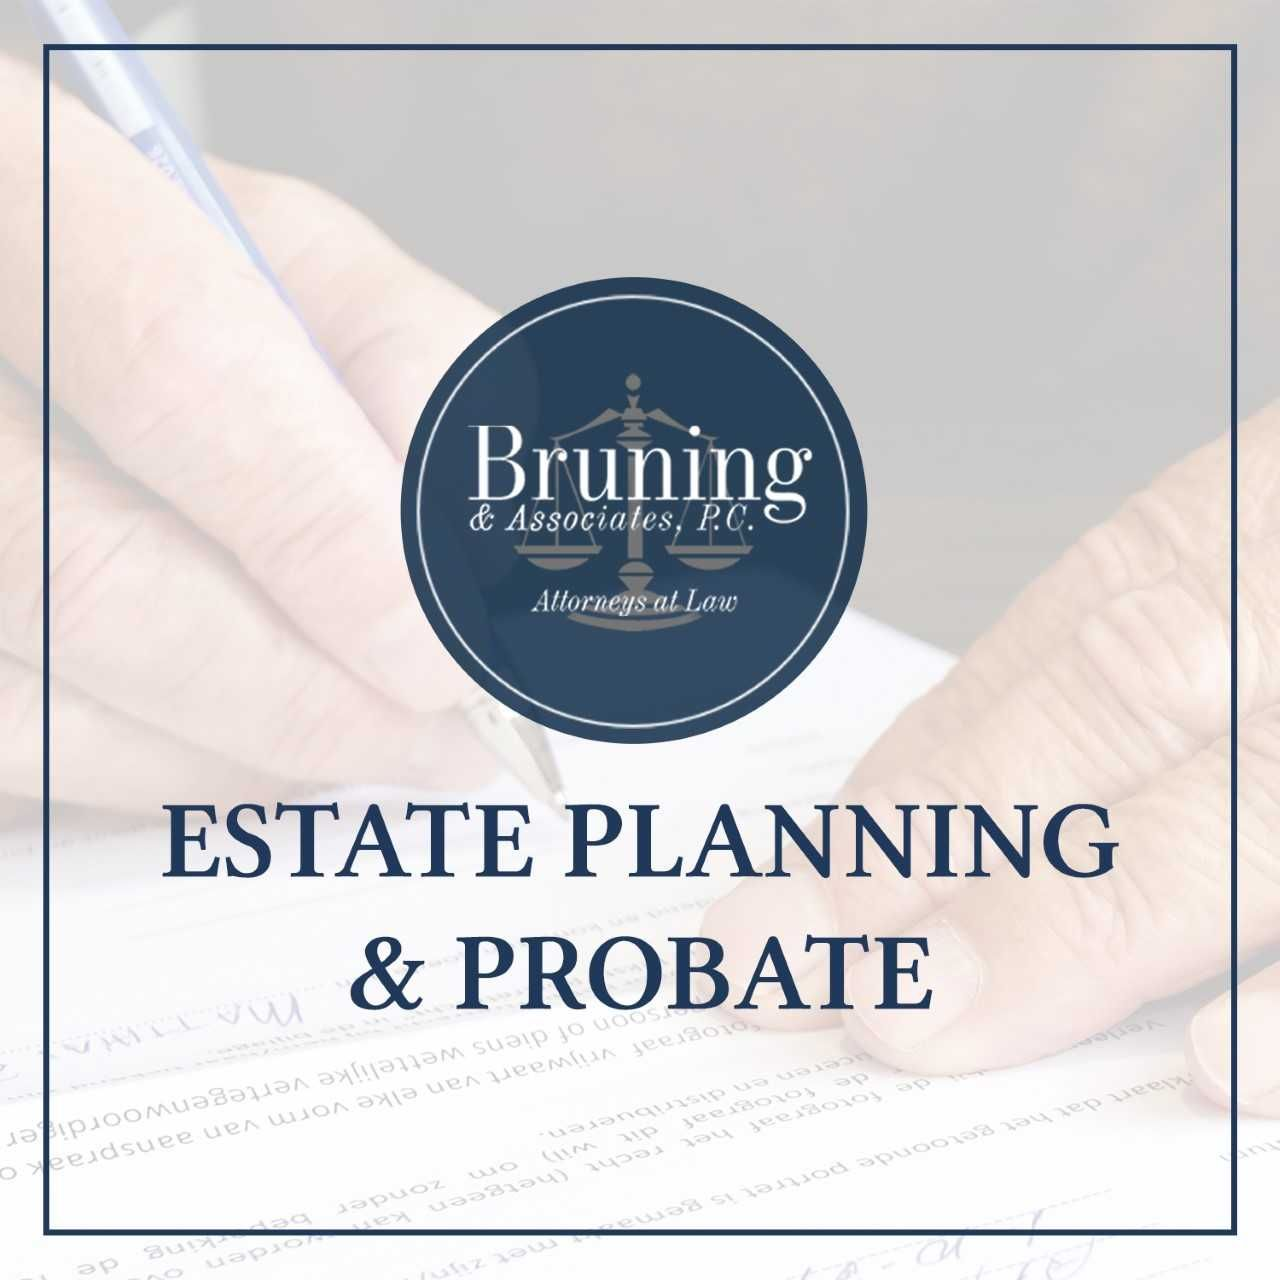 Bruning & Associates attorneys create and implement